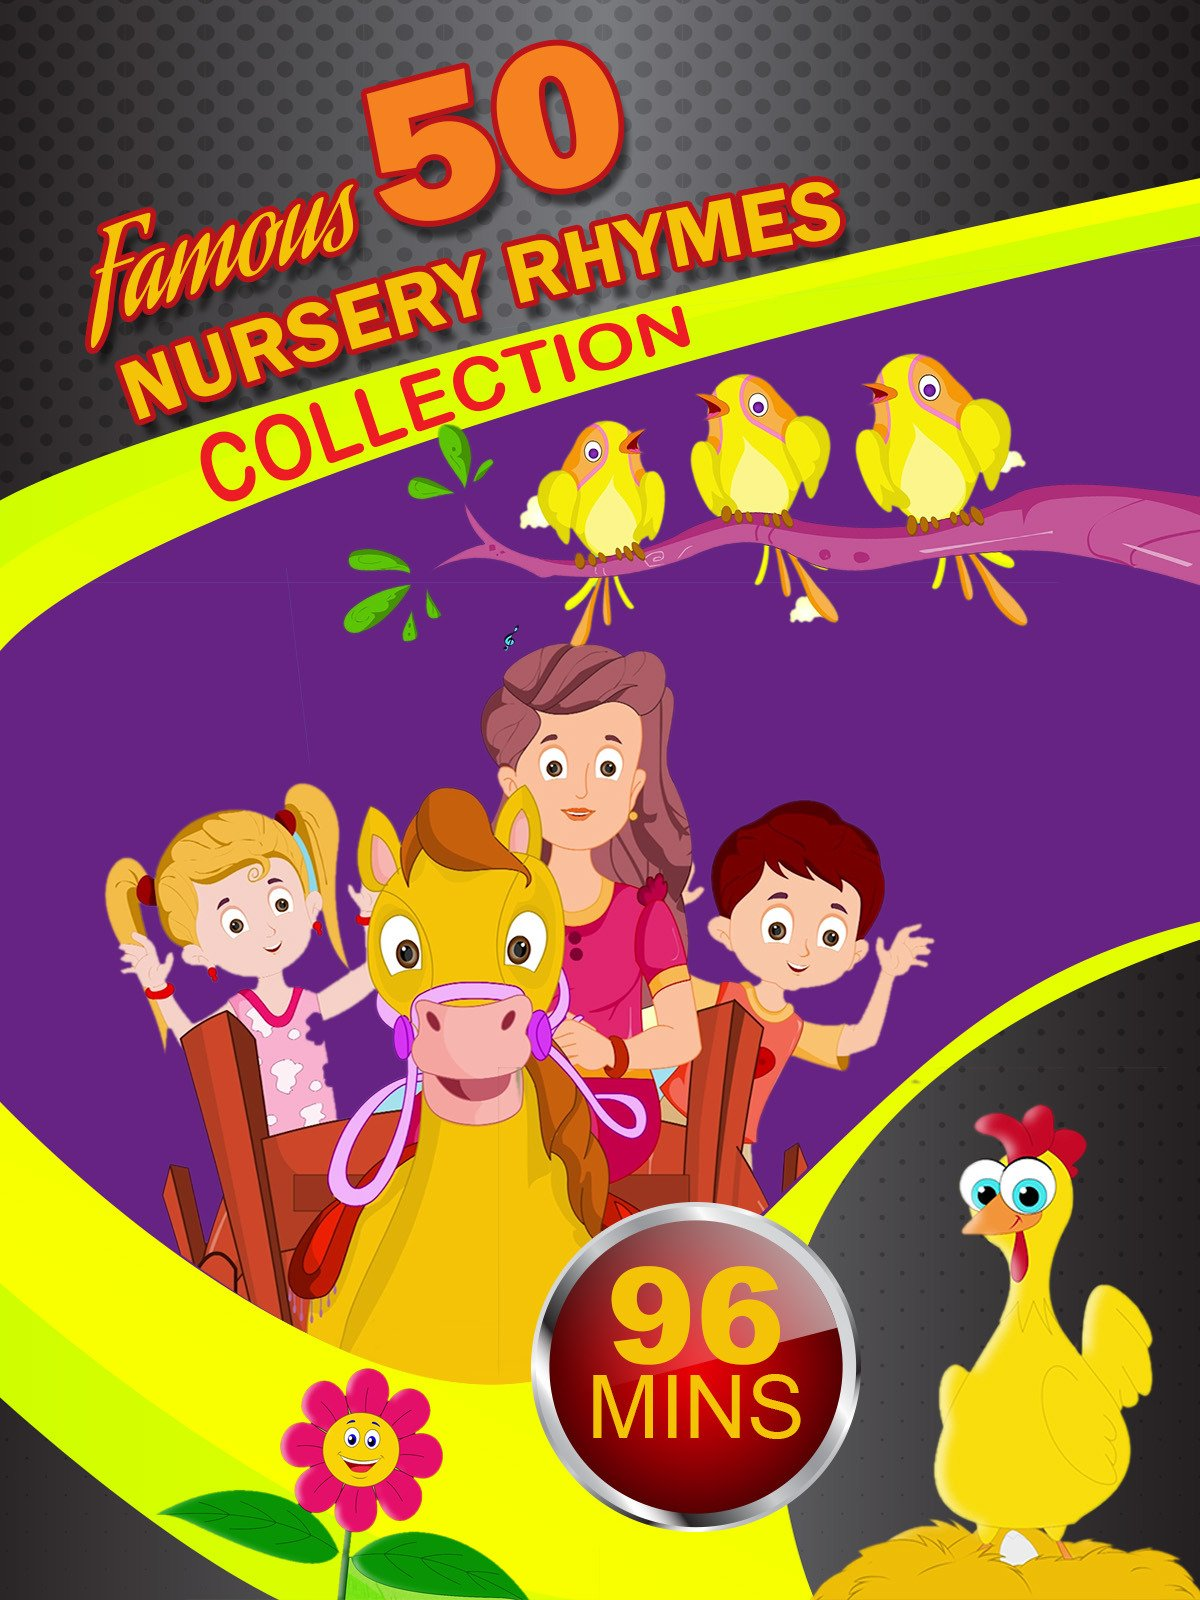 Famous 50 Nursery Rhymes Collection